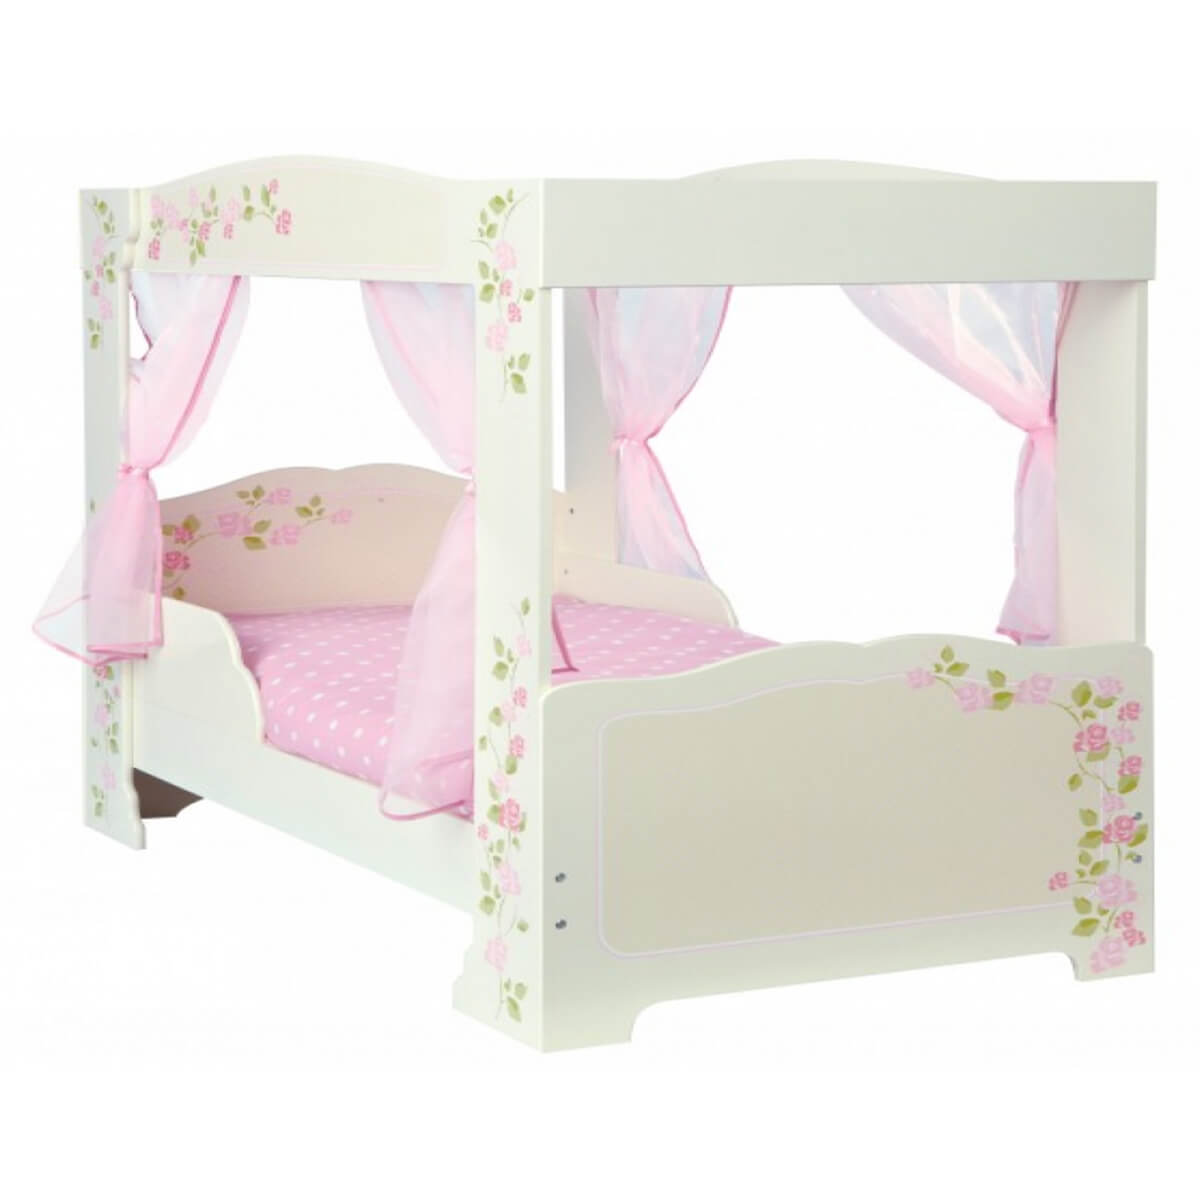 princess beds for toddlers princess 4 poster toddler bed character beds free 16803